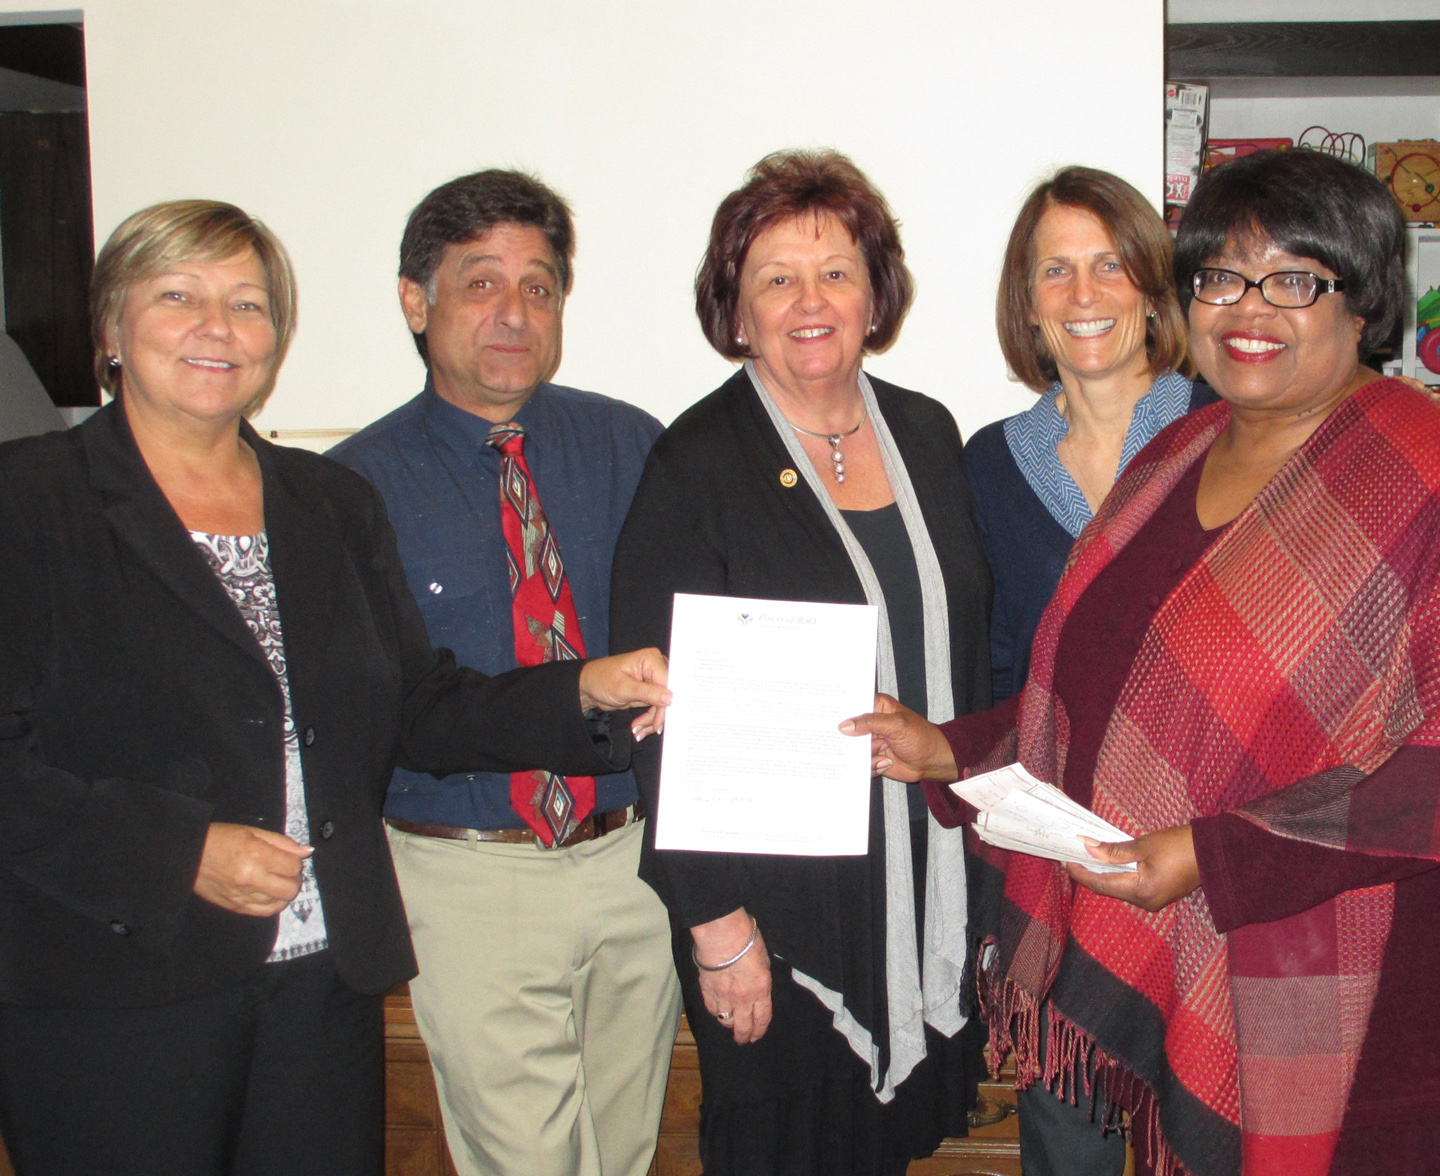 Stacy Newgaard (Power of 100 SW), TLC board chair Jeff Di Gregorio, Irene Kelly andJane Donahue (Power of 100 SW), and TLC Executive Director Lucy Zanders at the check presentation on May 18, 2015.